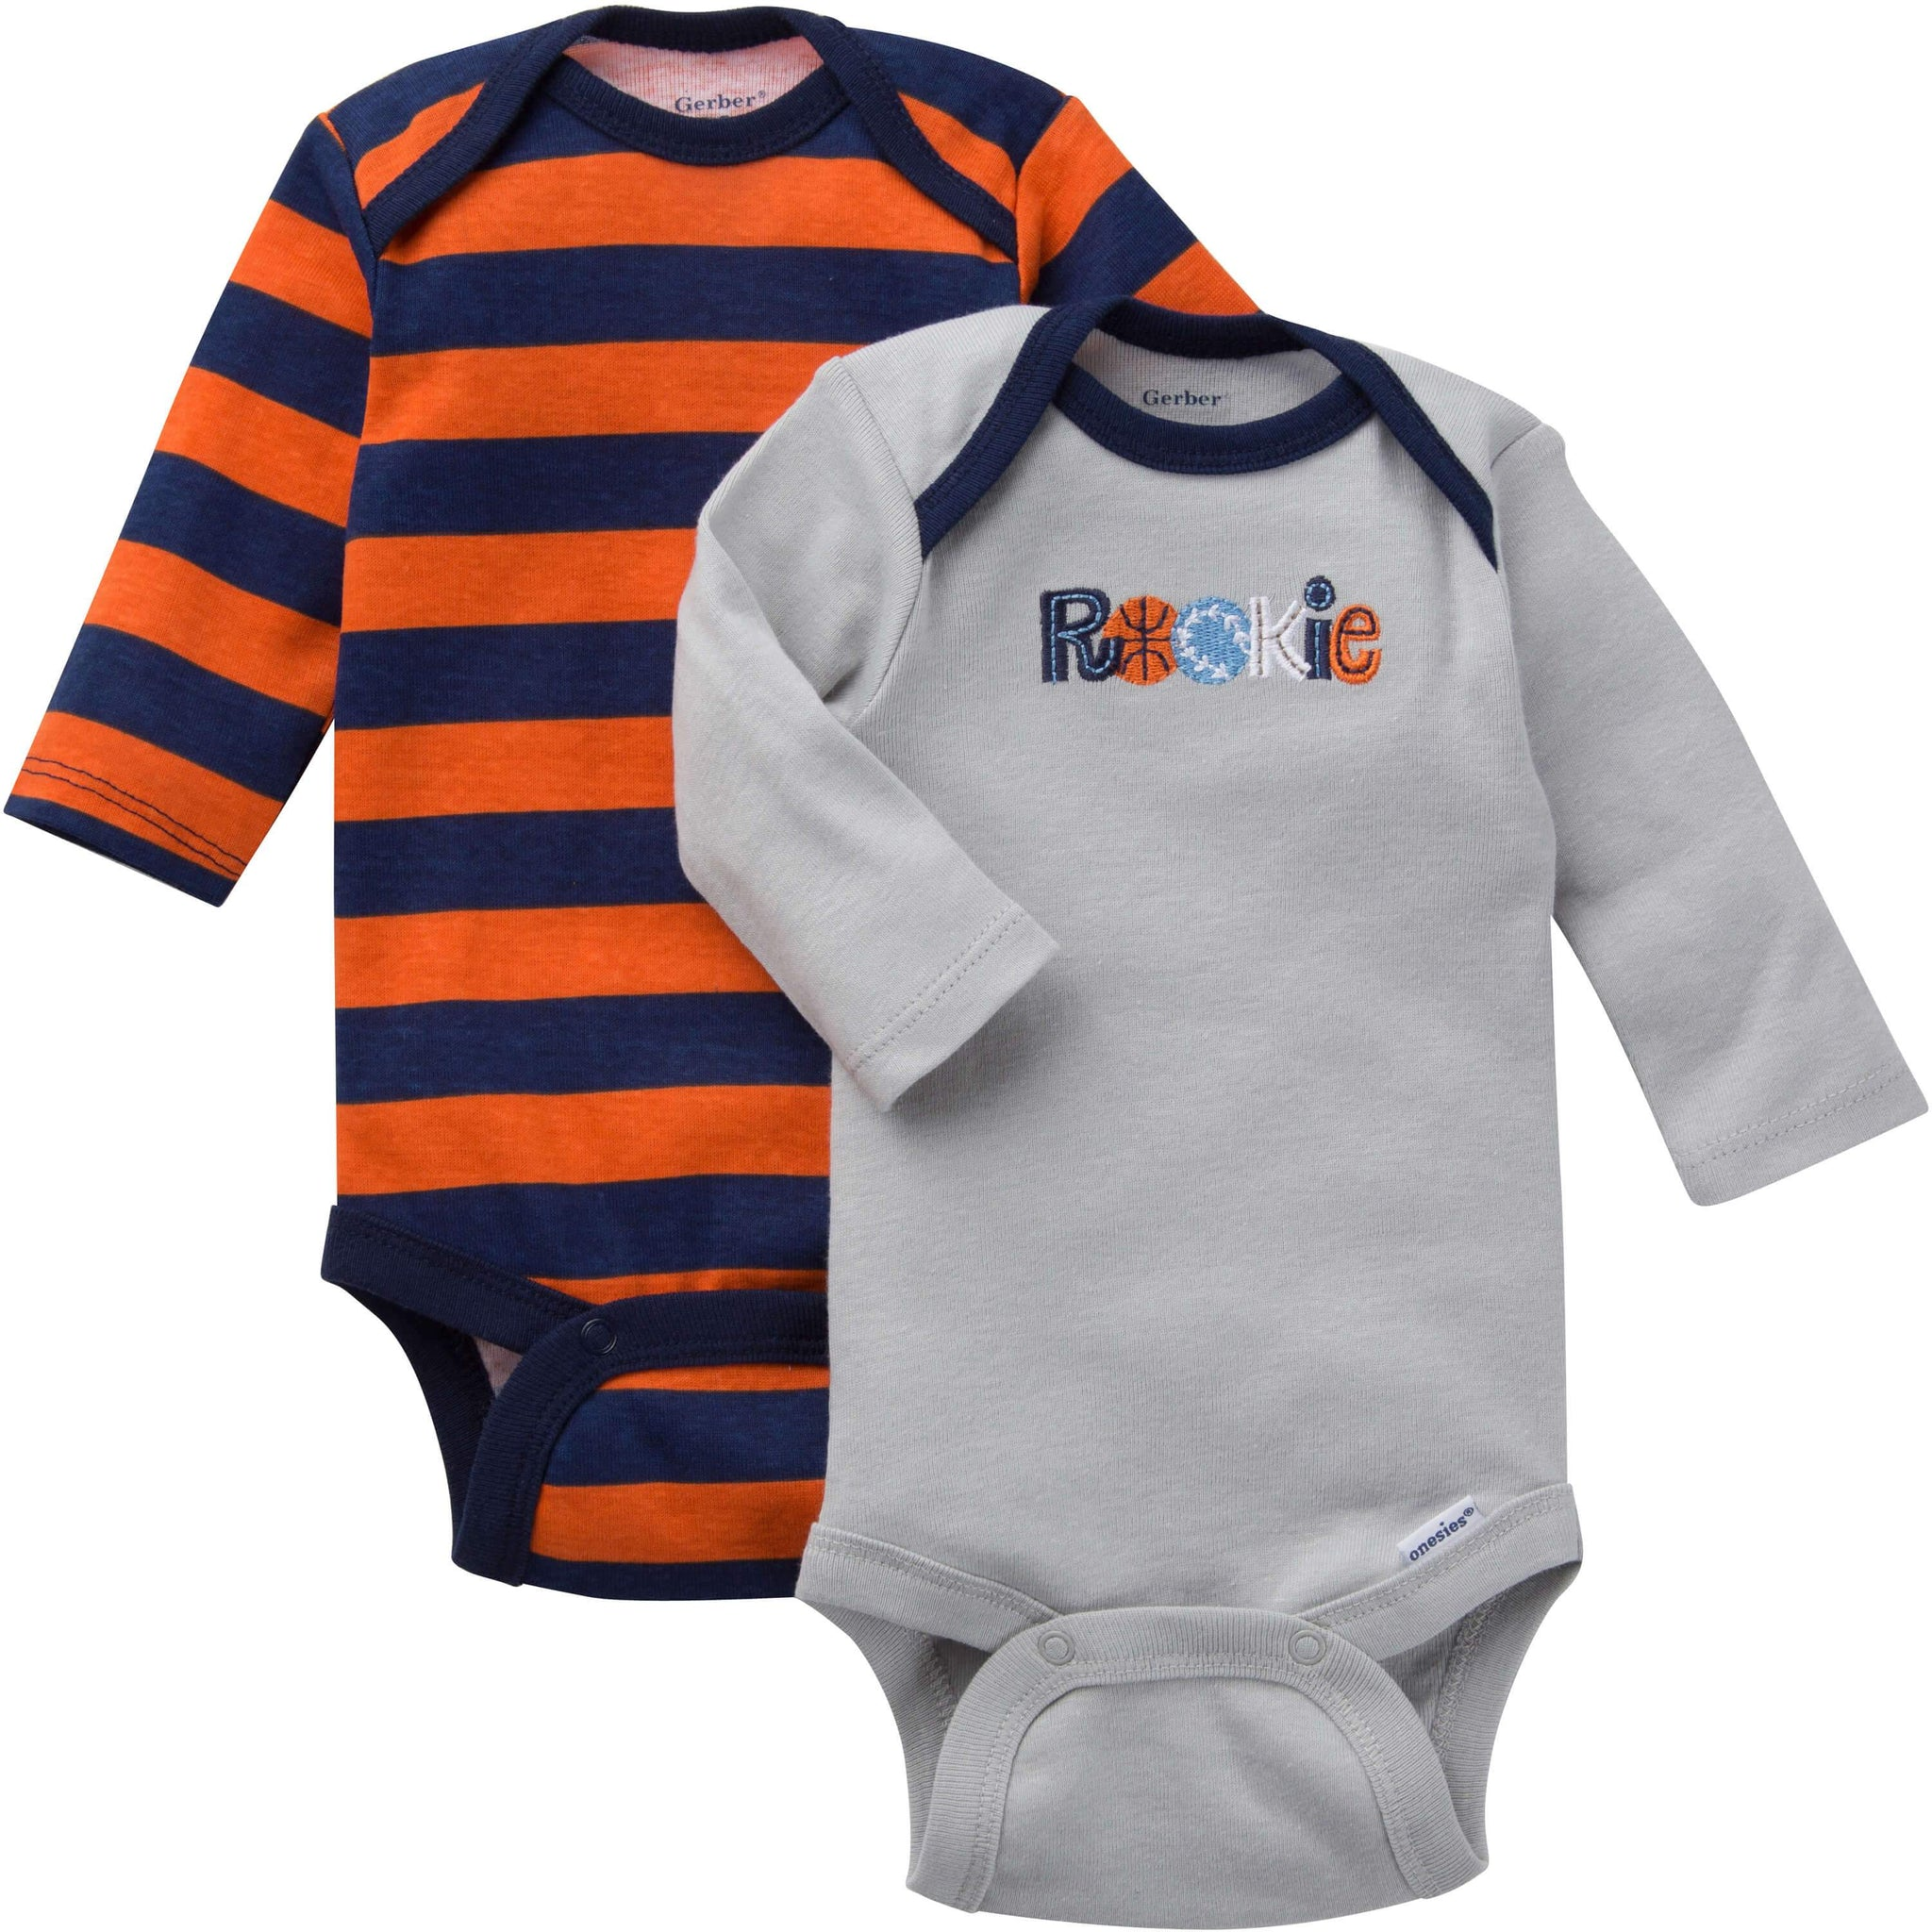 2-Pack Boys Onesies Brand Long Sleeve Bodysuits - Sports-Gerber Childrenswear